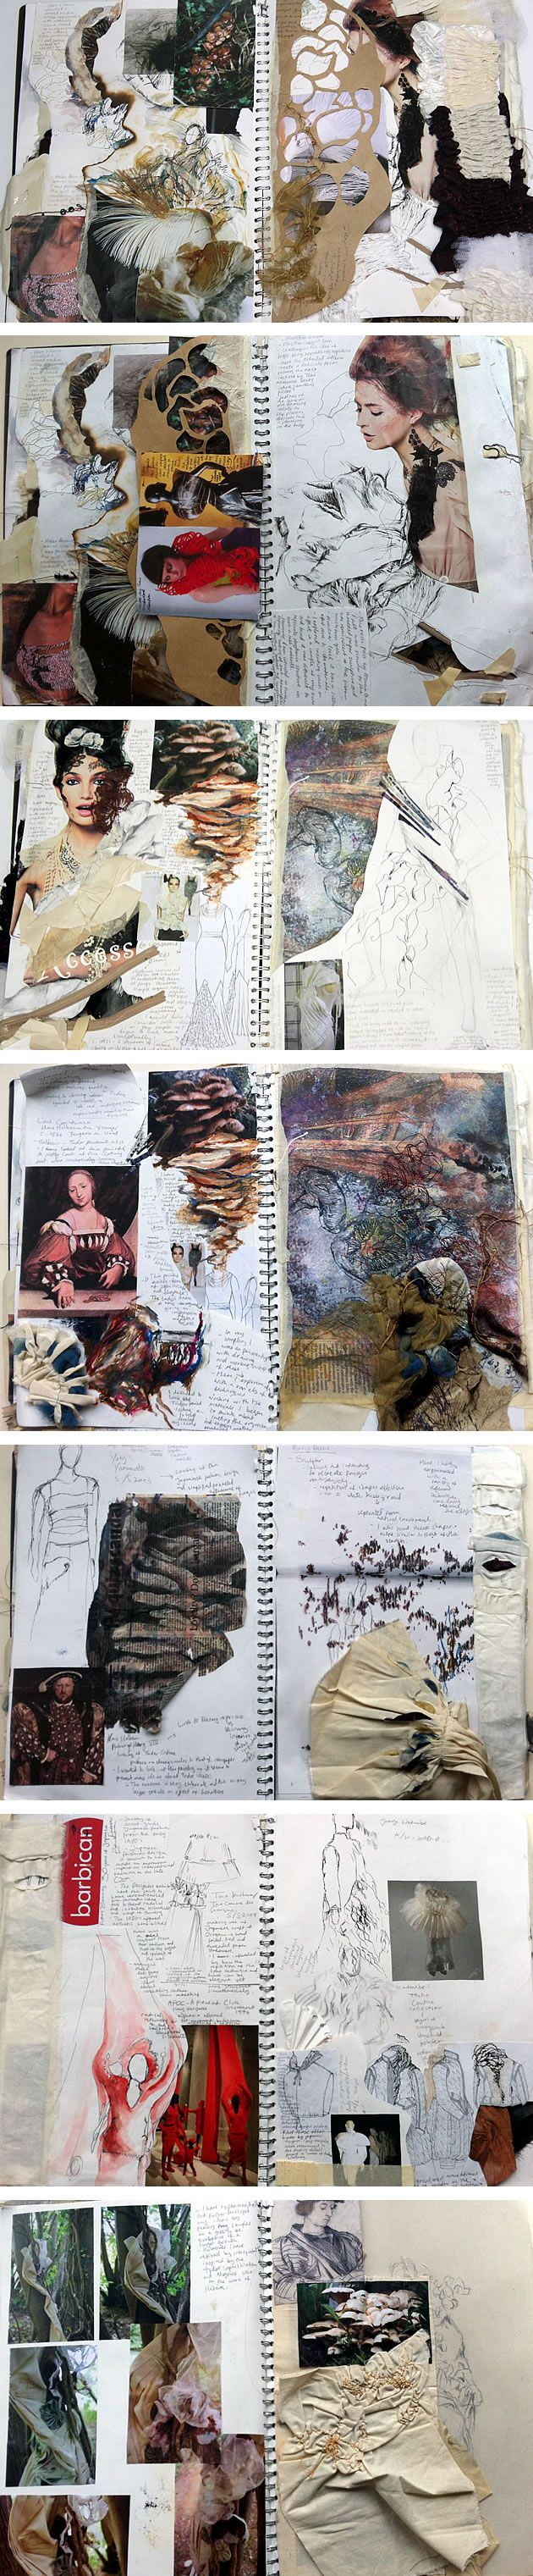 Fashion Textiles sketchbook.. i just think it looks like a vintage sketchbook because of the old autumn like colours, various textures, illustrations and typography.. a lush mash of everything!